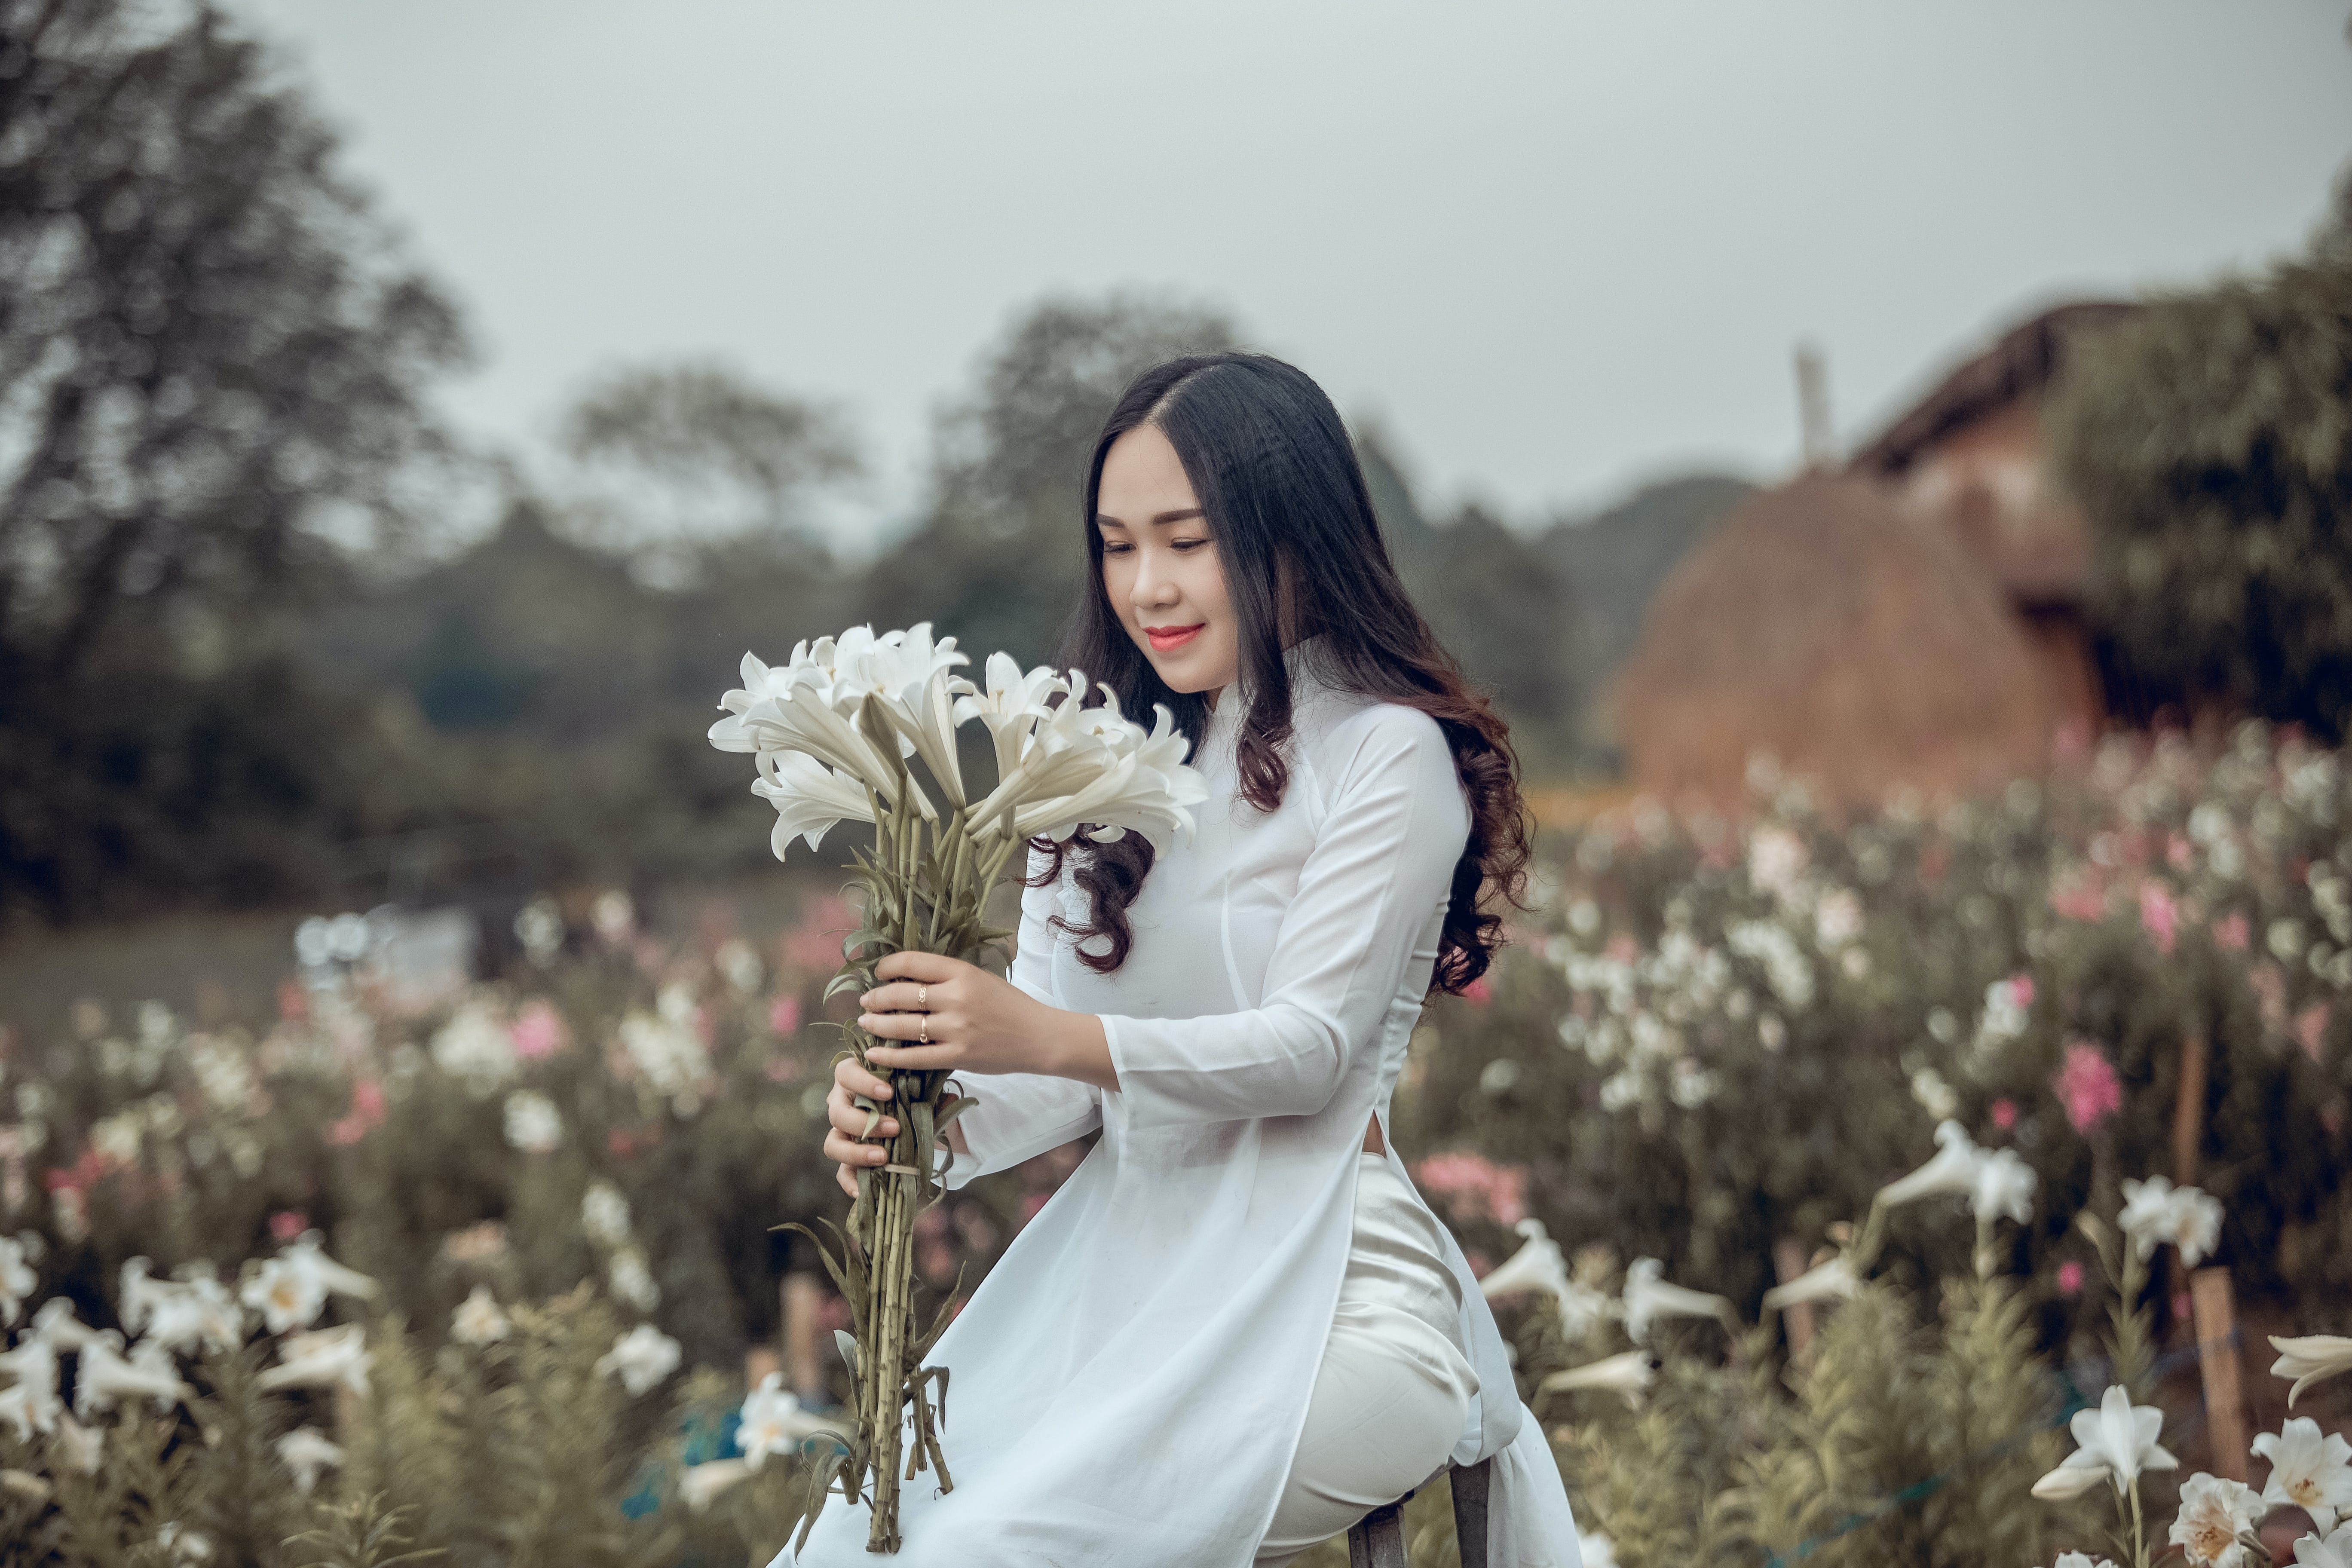 Photo of Woman In a White Outfit Kneeling While Holding White Petaled Flowers